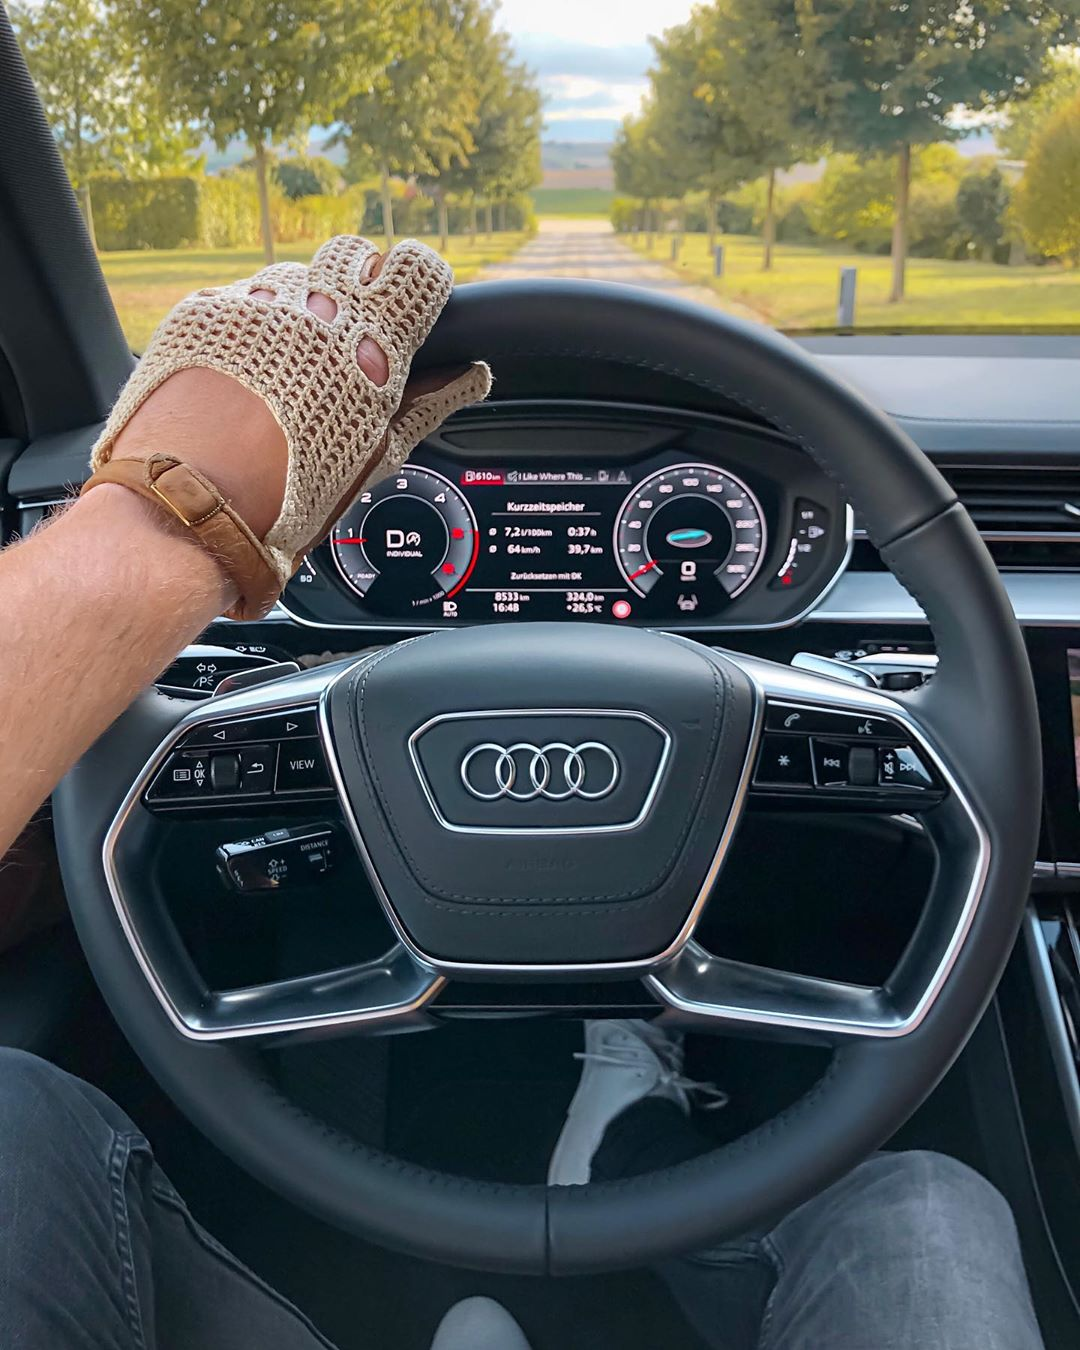 That View🤩…back in our A8 50 TDI for a few days…unbelievable luxury in this one👌 #audia8 #a850tdi #audiluxury #luxury #audiexclusive #a8l #a8 #automanntv #automannsgarage #audi